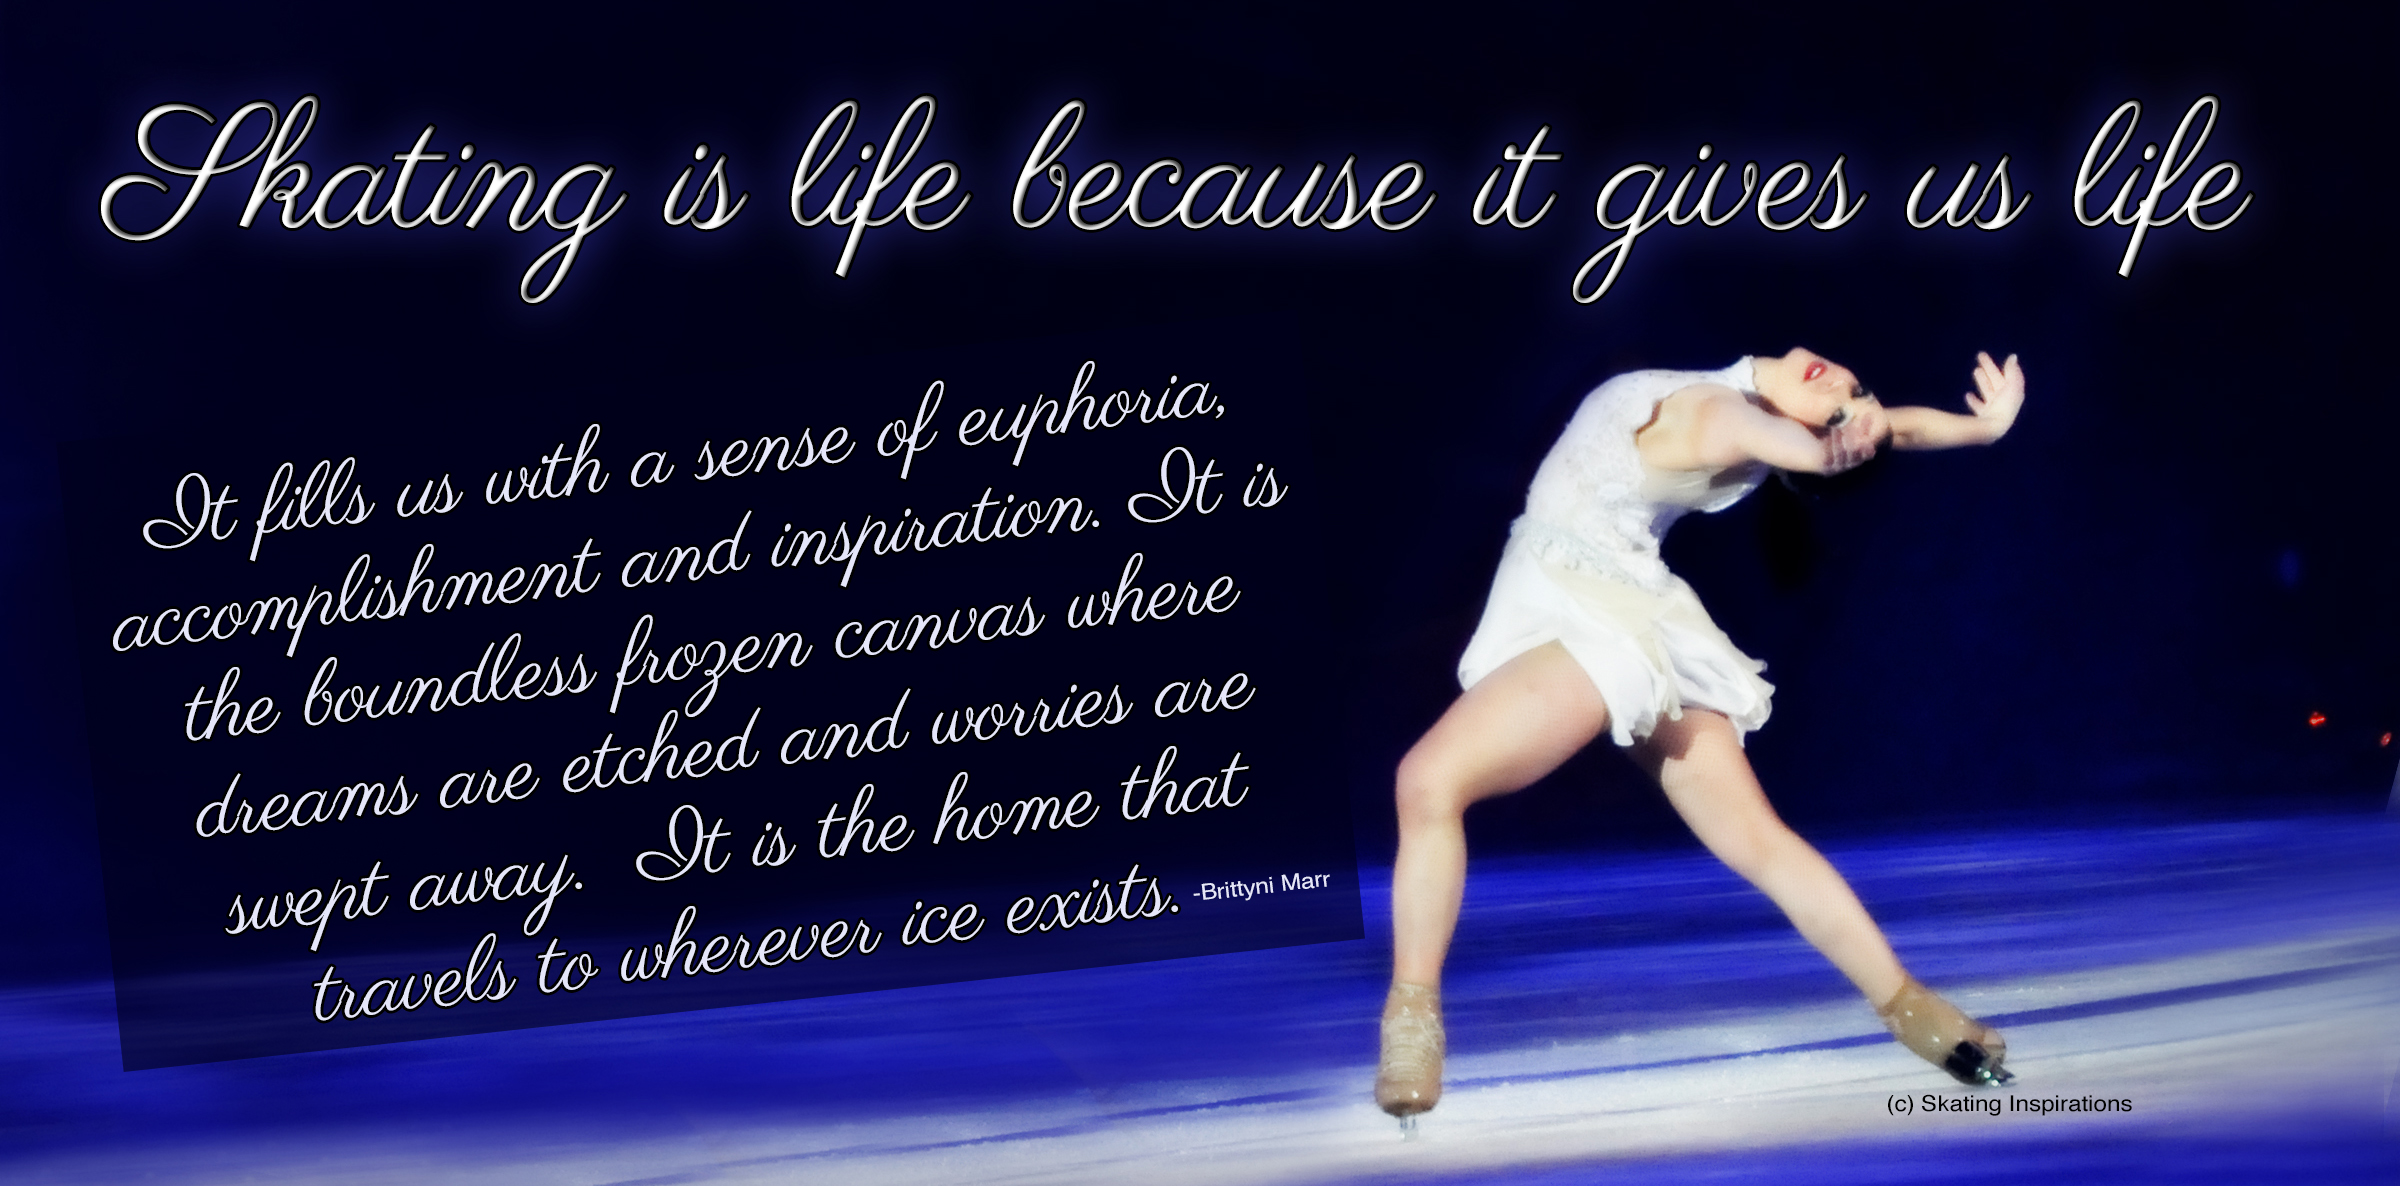 Ice T Quotes About Love : Skating Inspirations Figure Skating quotes, Inspirational qoutes ...